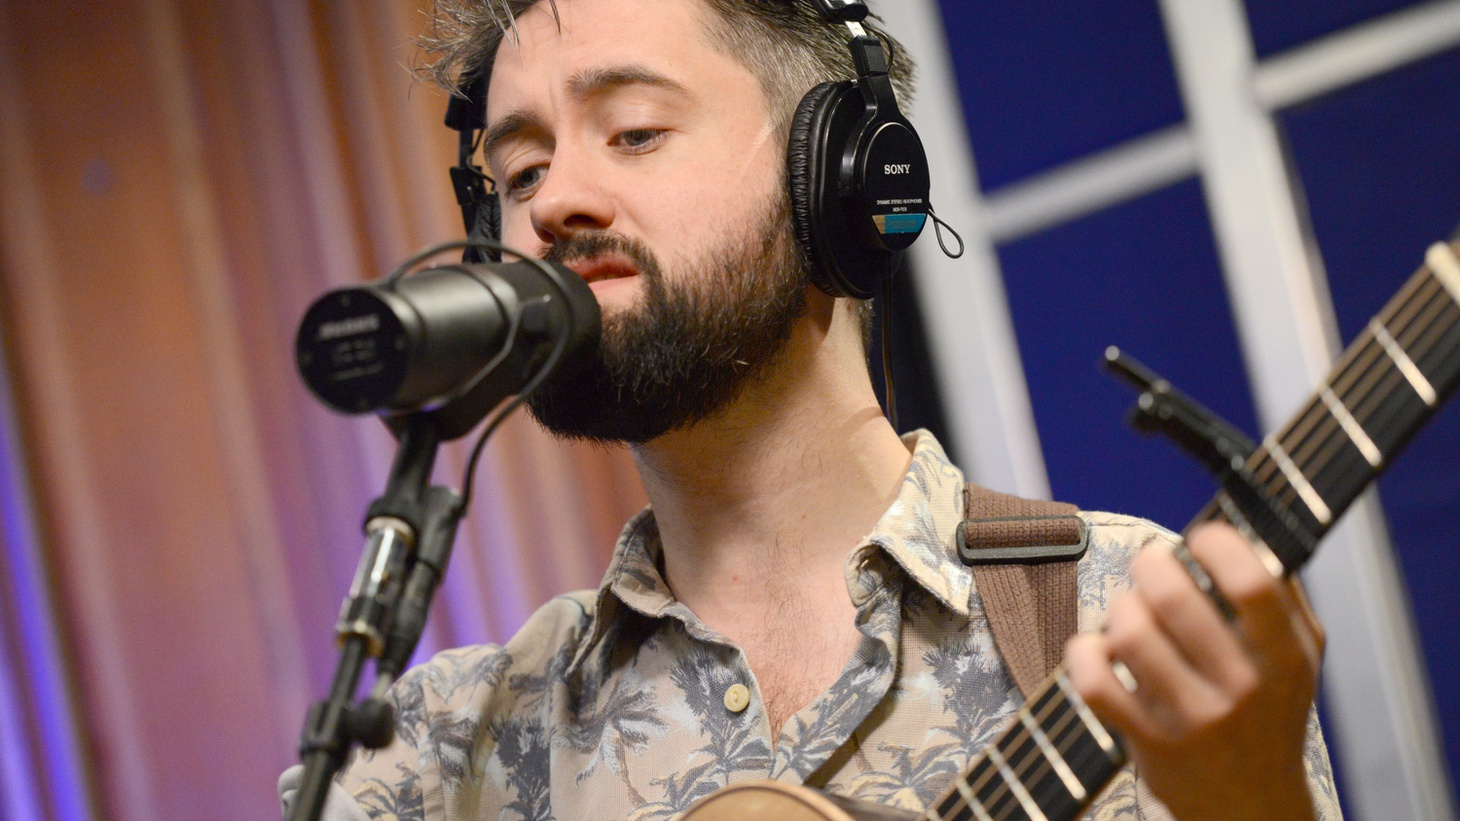 Conor O'Brien, aka Villagers, is able to strike an emotional chord with his music.